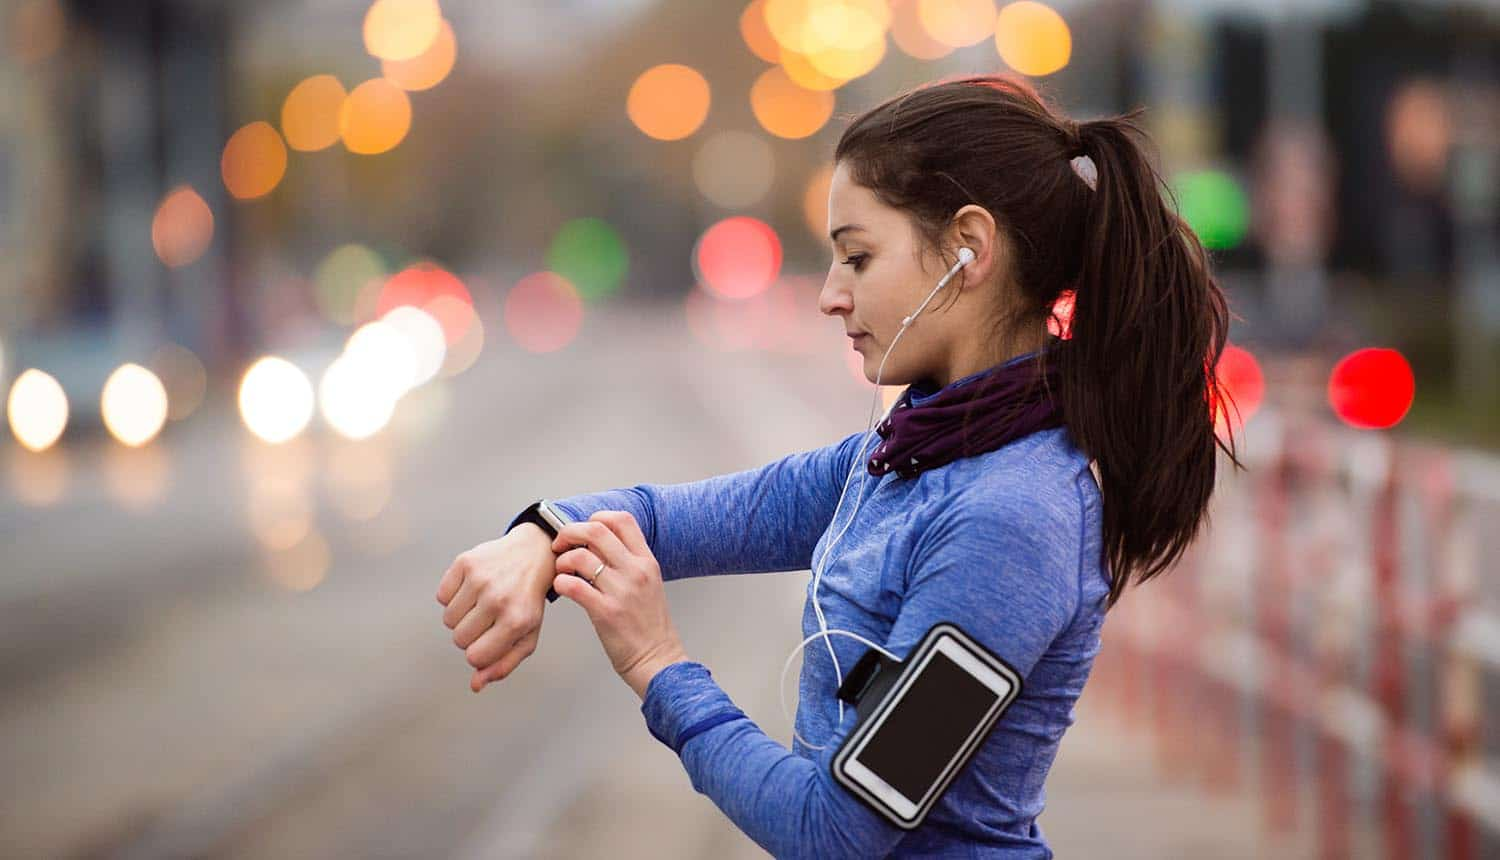 Woman in the city with smartwatch and earphones showing fitness tracking data